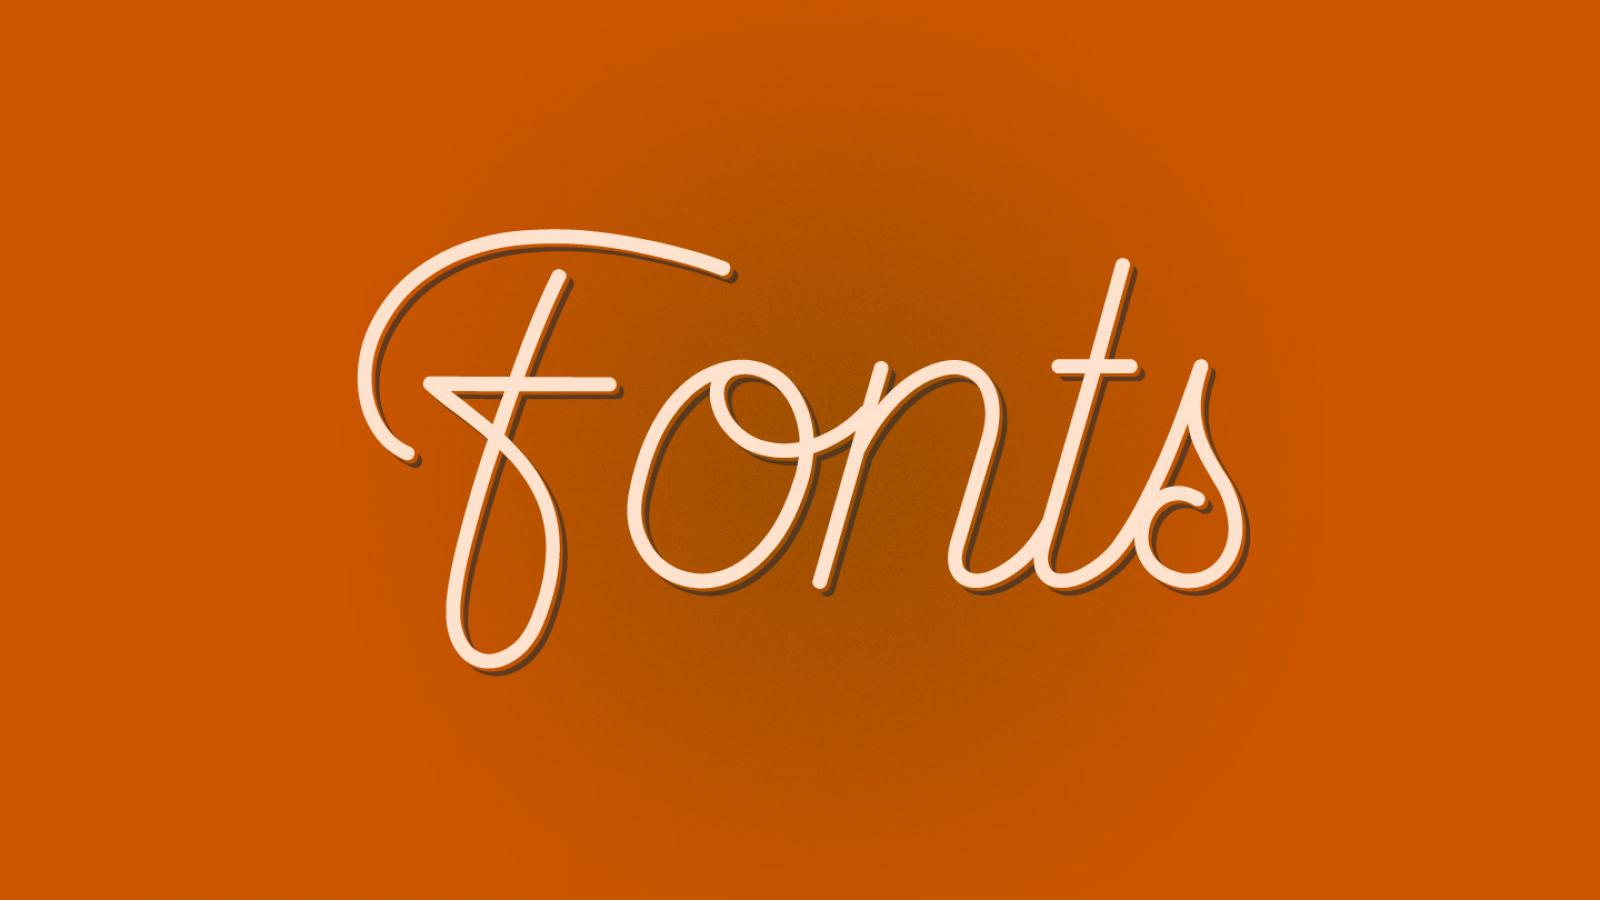 Friday Fresh Free Fonts - Frinco, Les Sensations, The Wahhabi Script